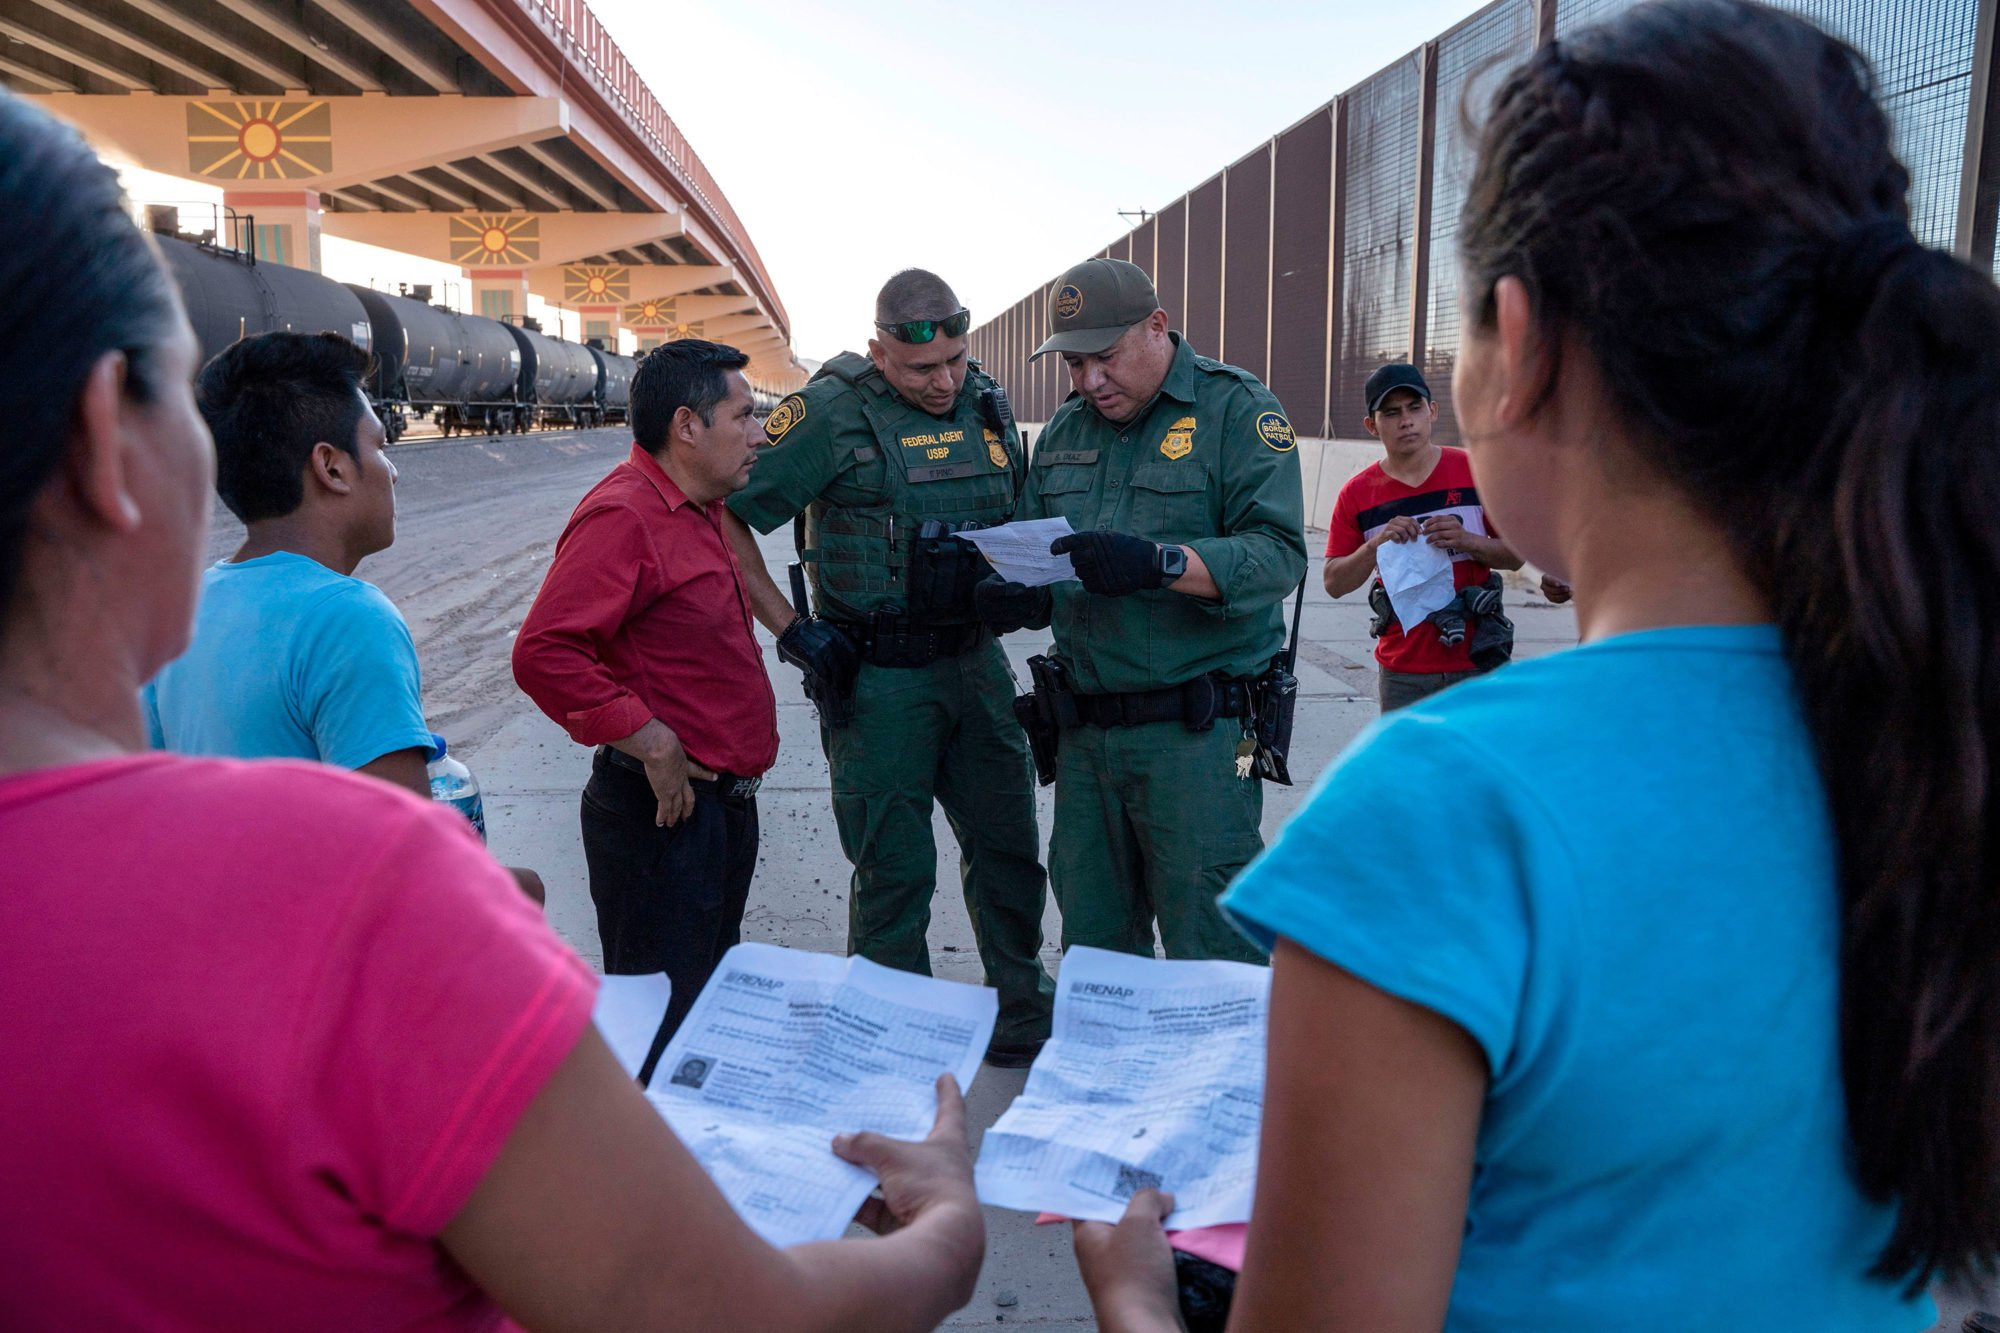 Border Agents Can Now Get Classified Intelligence Information. Experts Call That Dangerous.